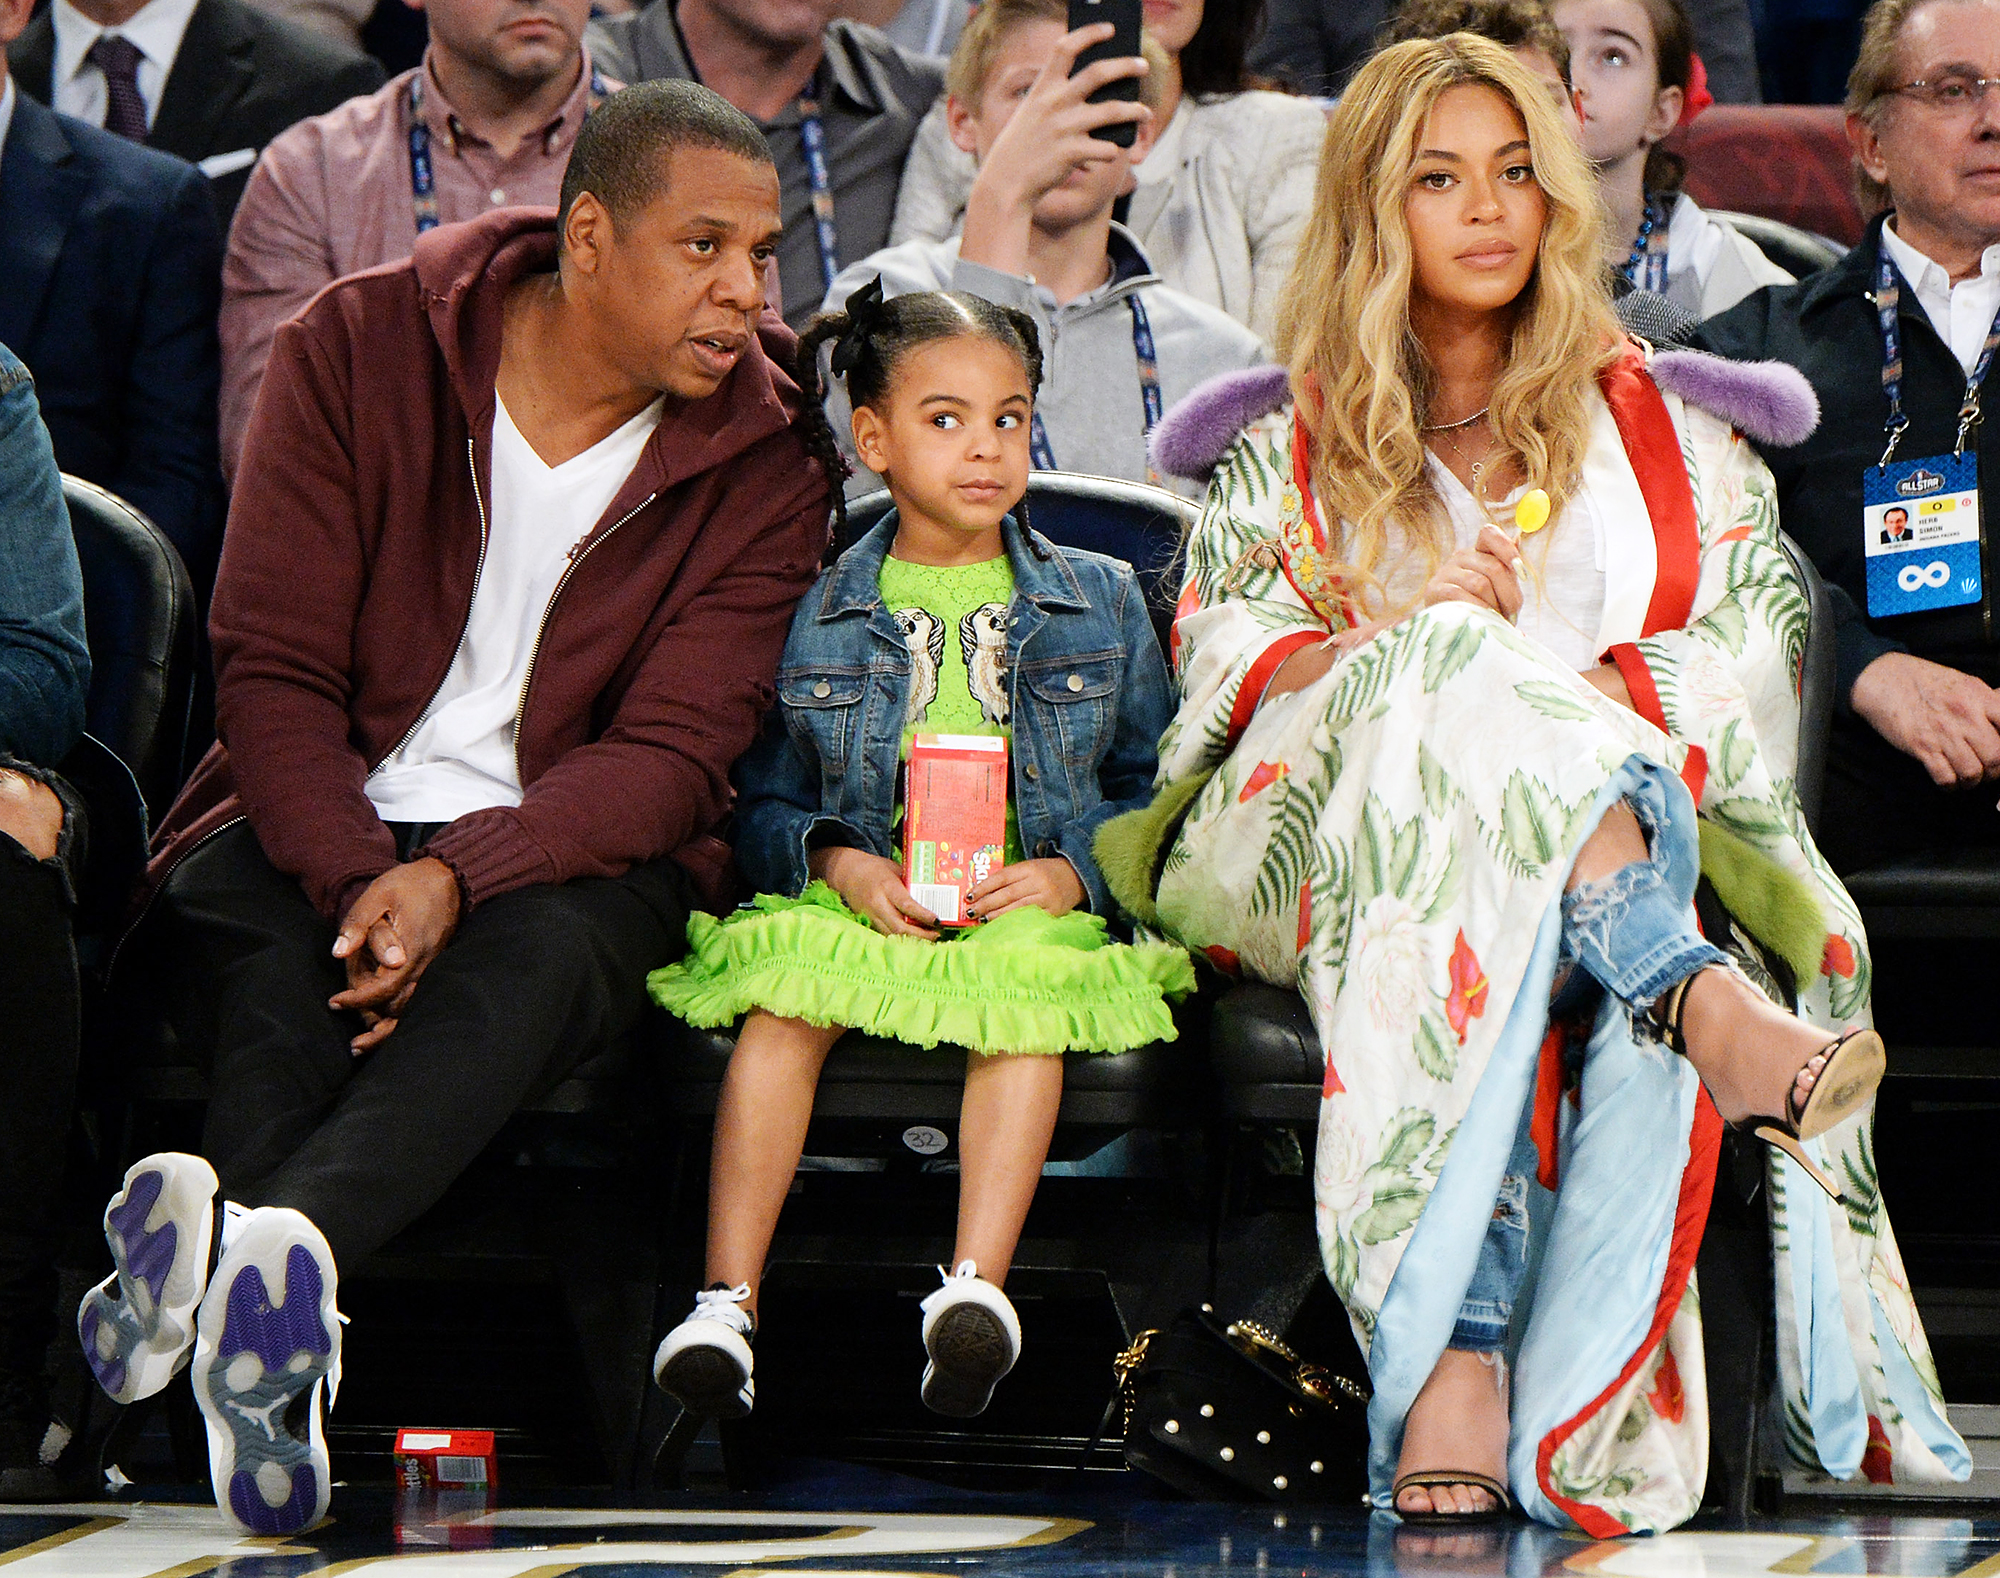 Blue Ivy's Reaction To Beyoncé & Jay Z's Raunchy Tour Footage Is EVERYTHING